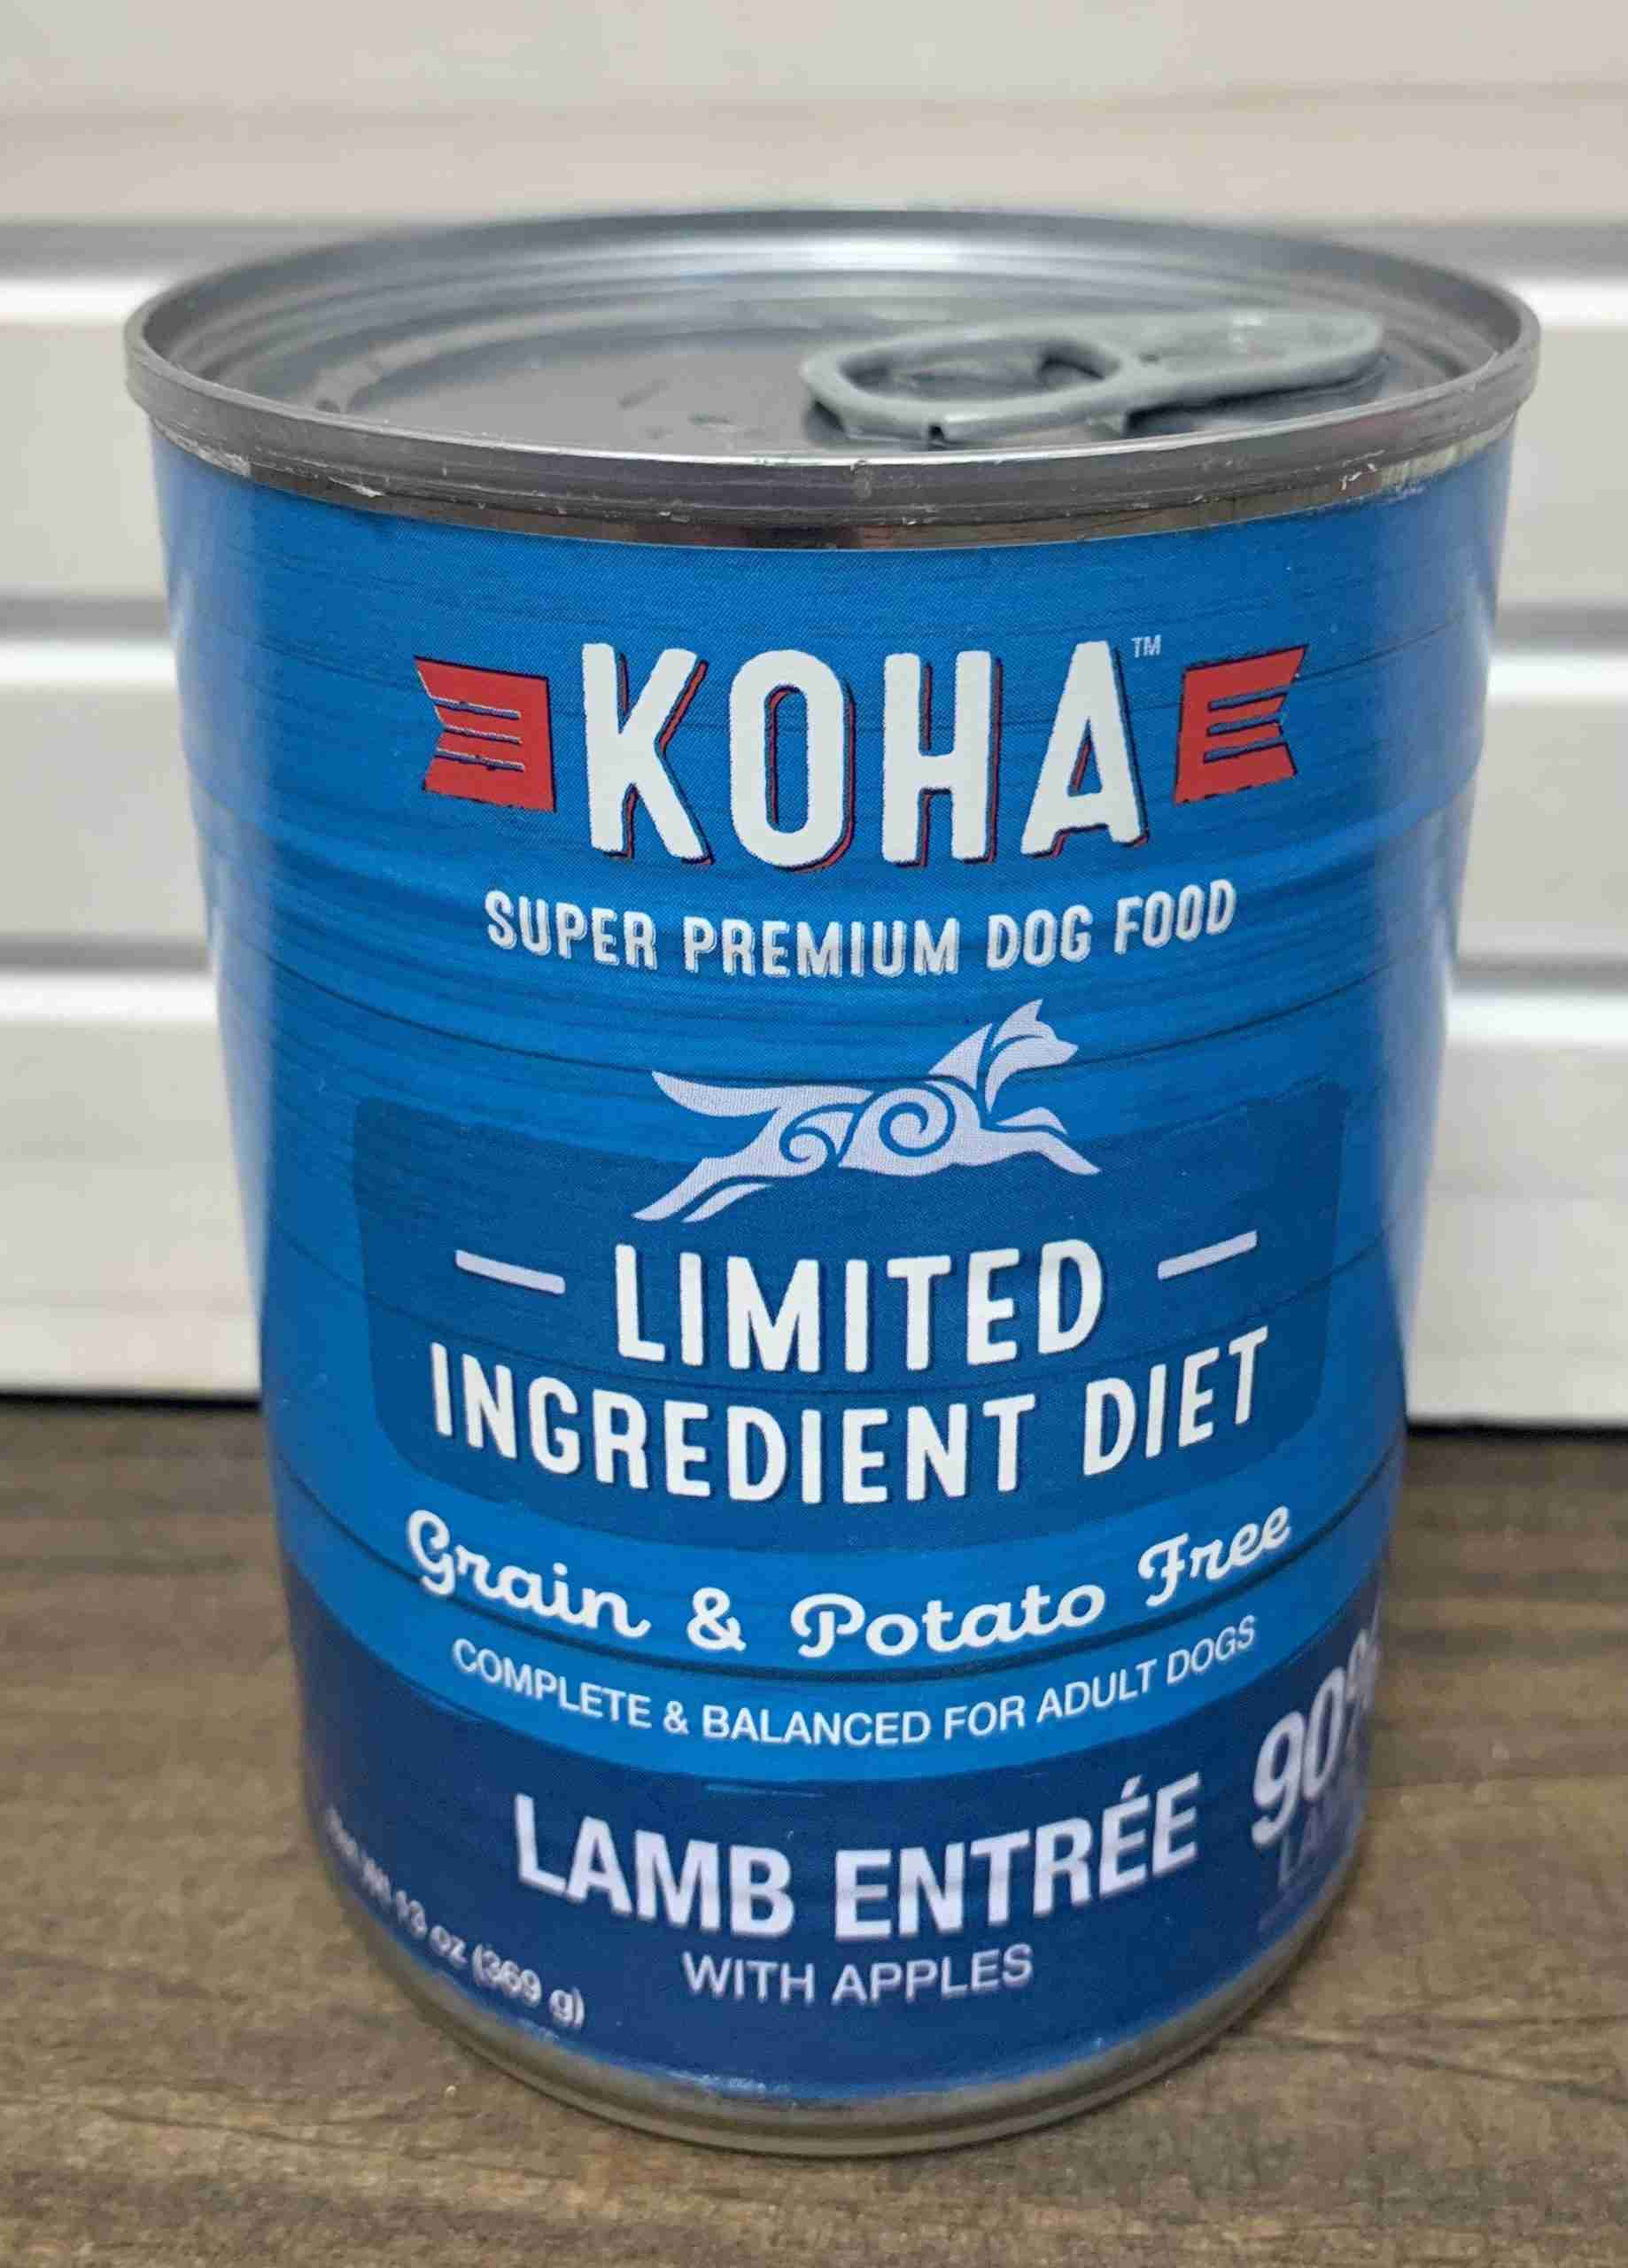 Koha Limited Ingredient Lamb Entree for Dogs – One case (12 cans)